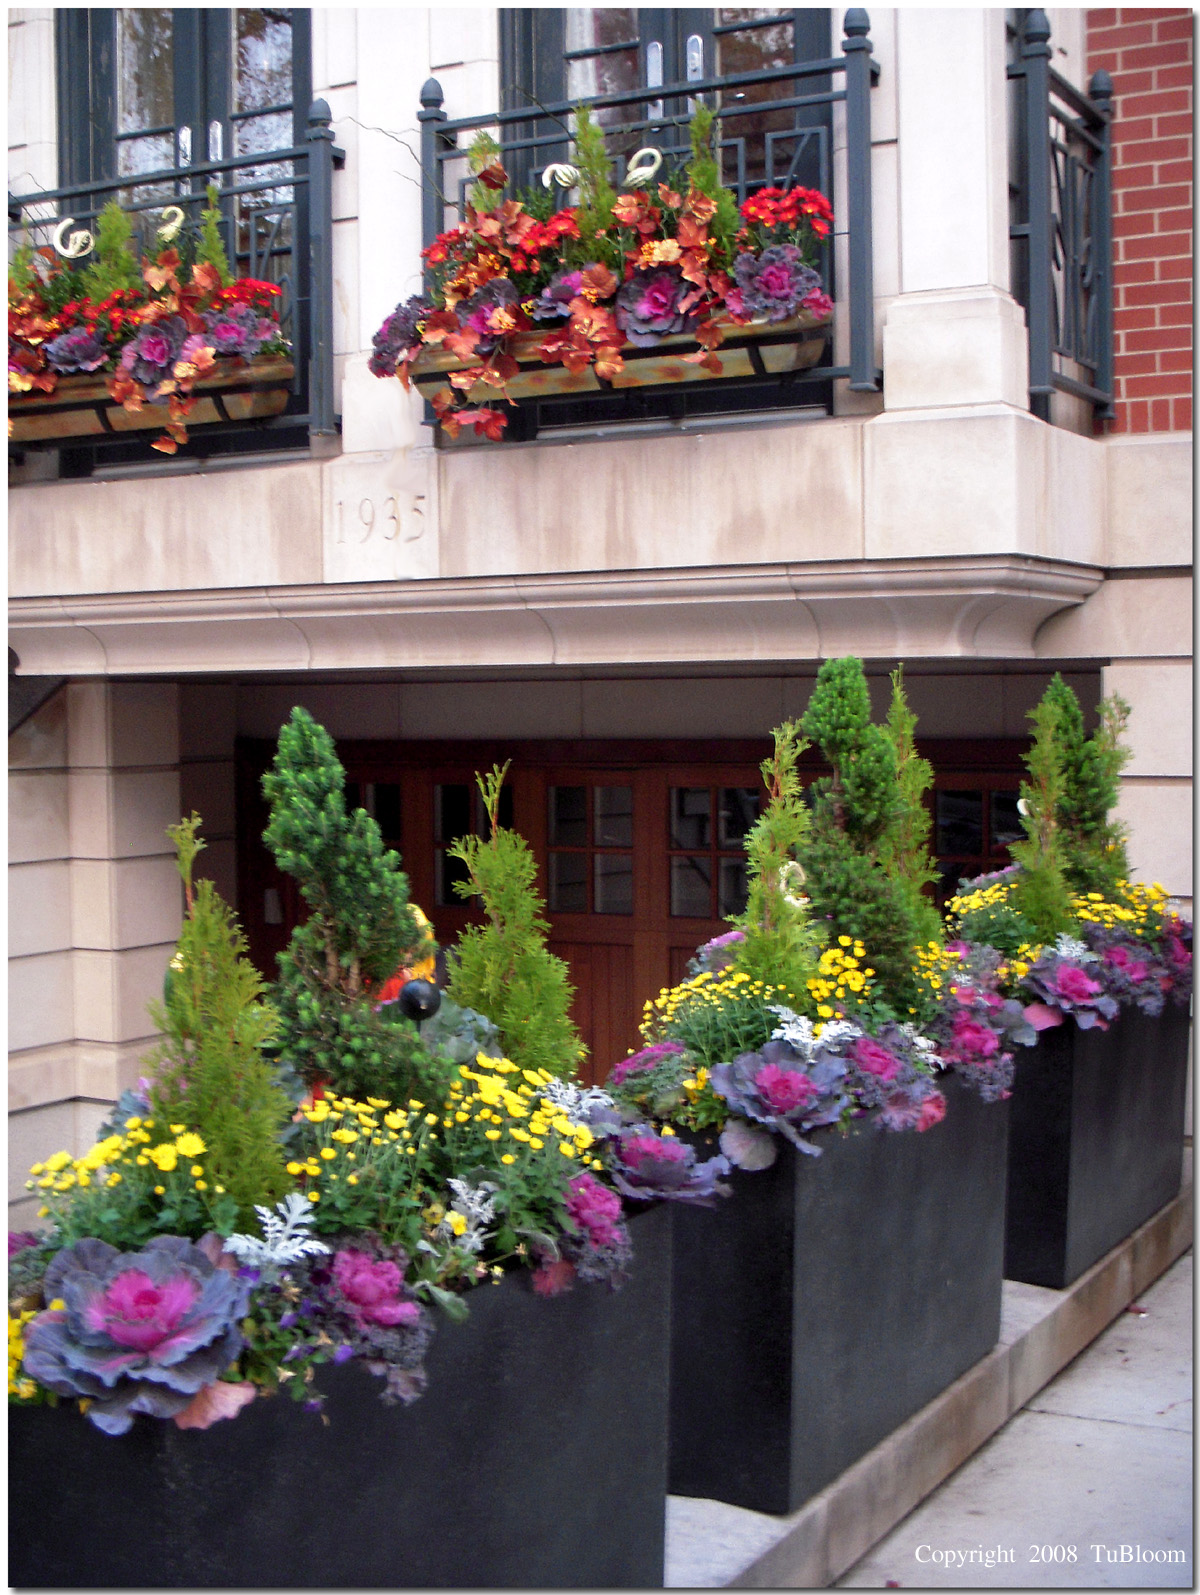 beautiful fall luxury container combinations by tu bloom pave the way throughout some of the most notable streets of chicago, hollywood, malibu, and manhattan